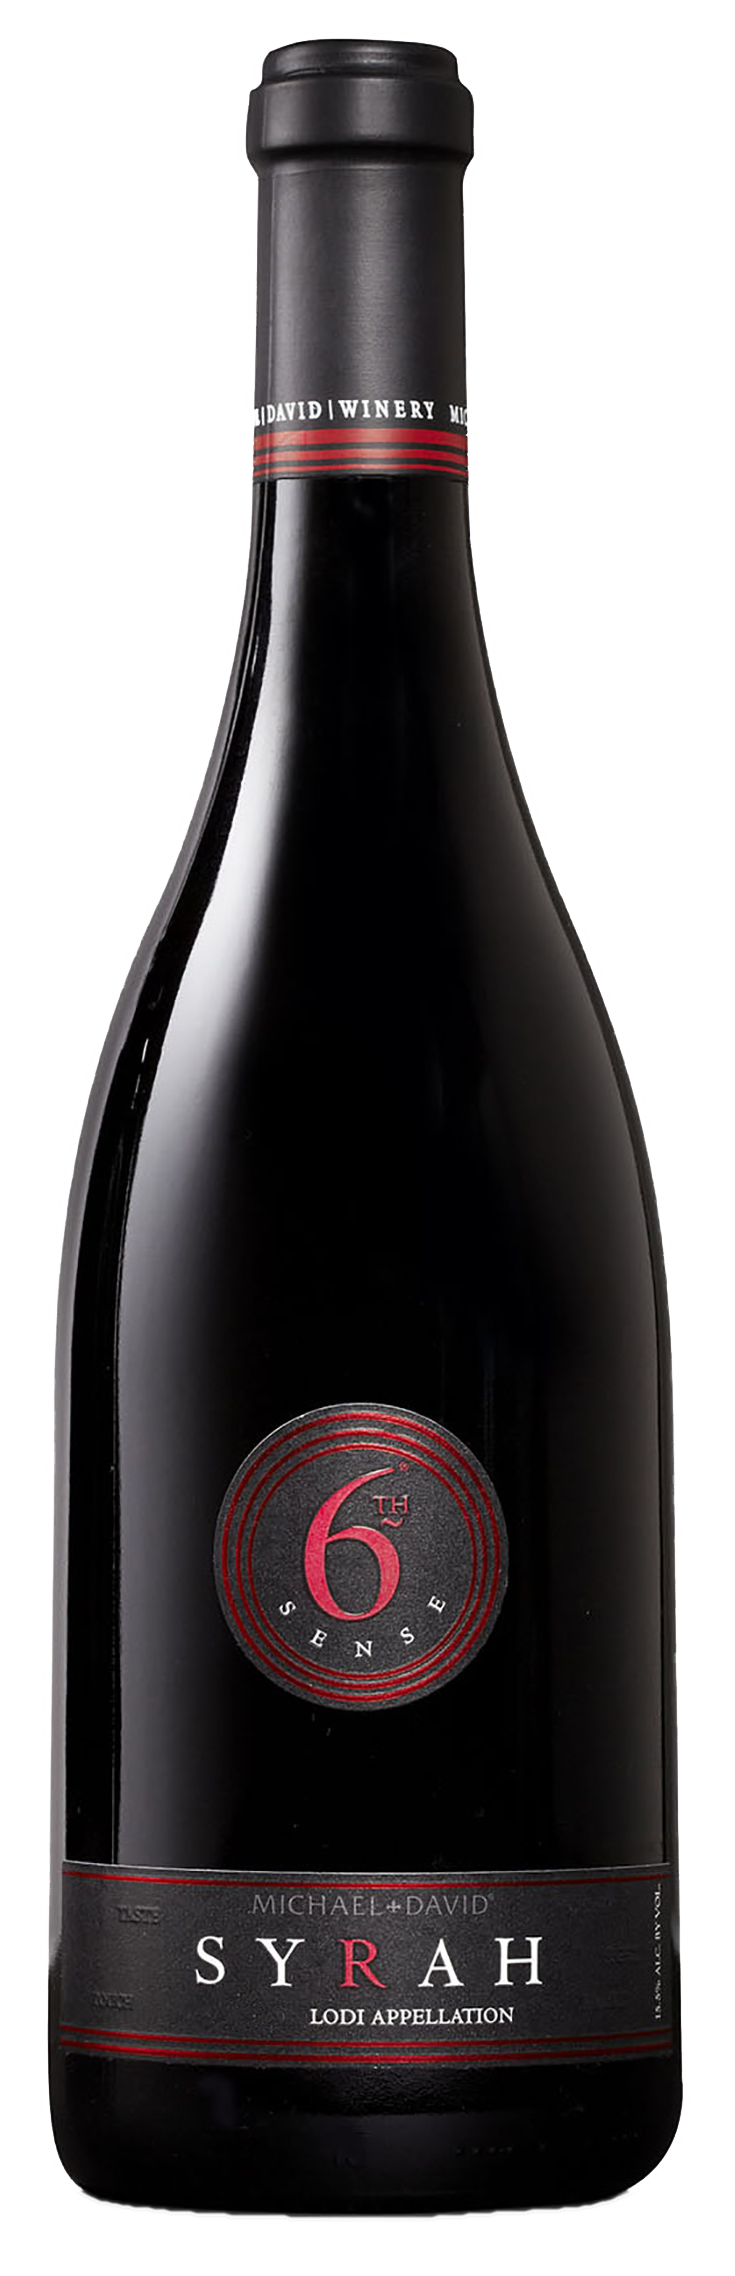 6TH-SENSE-SYRAH no background